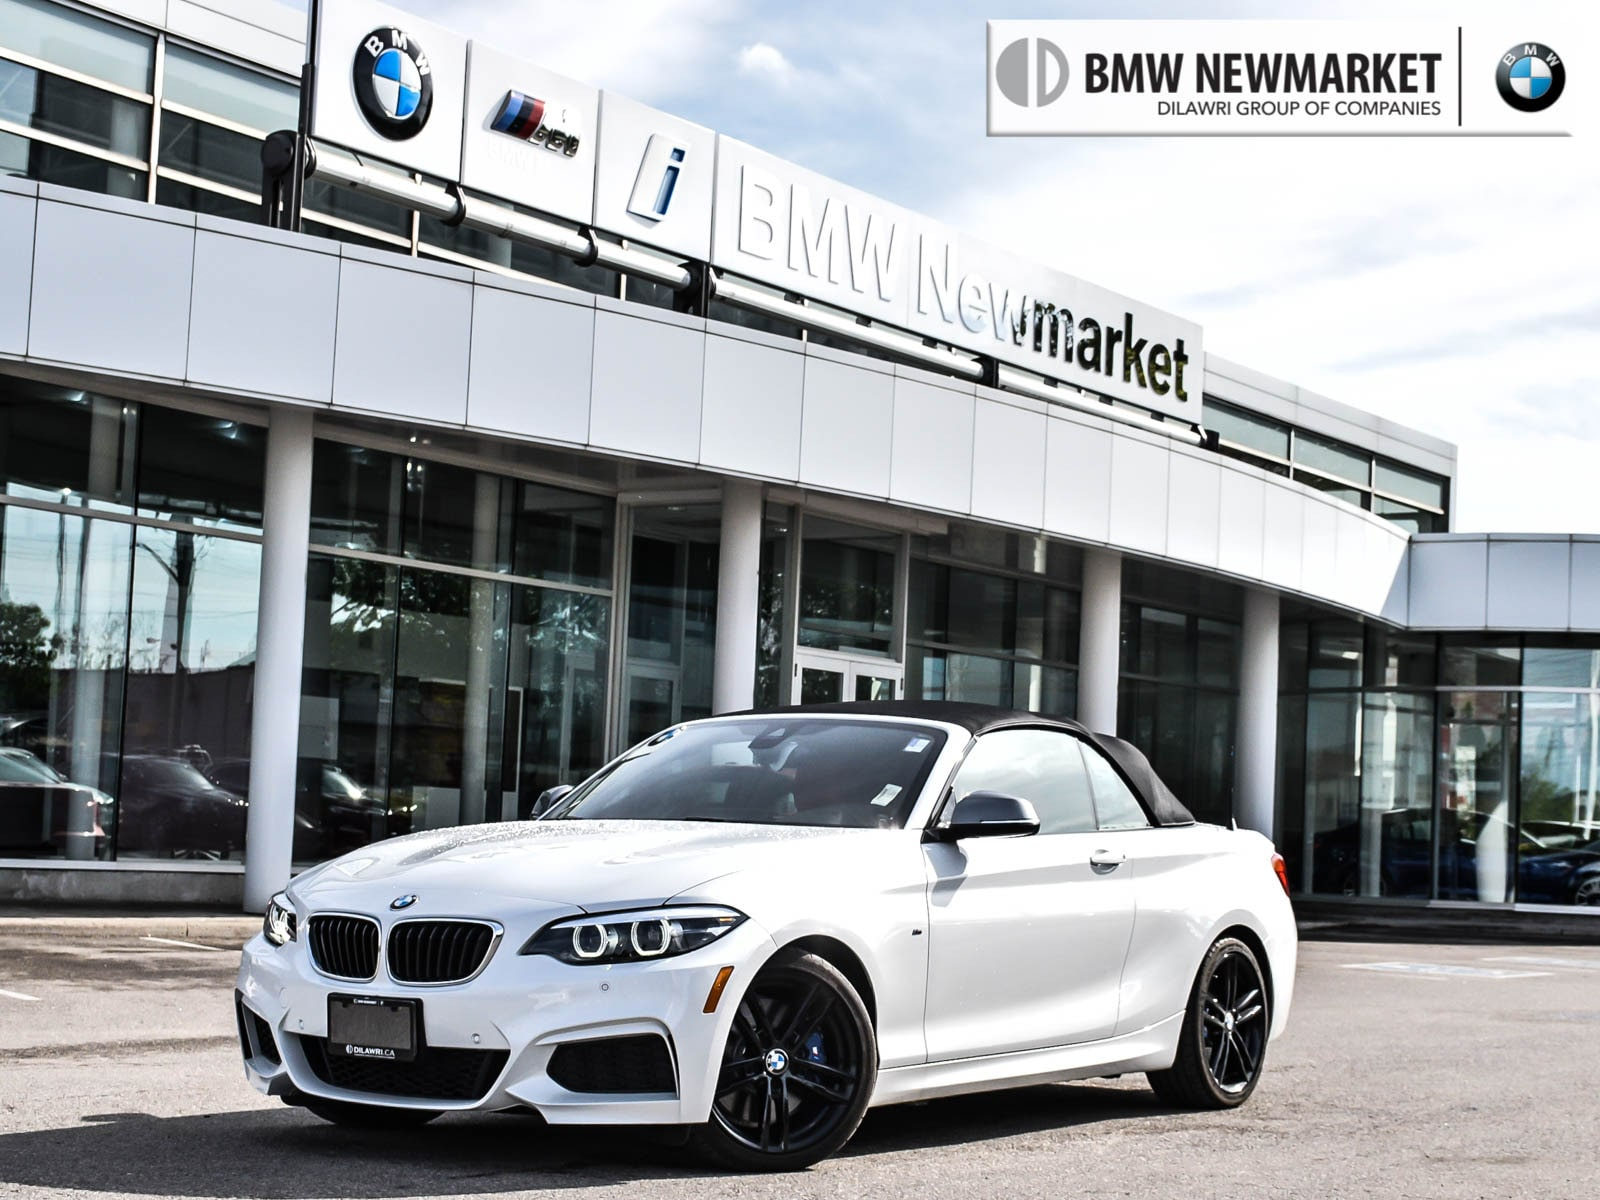 2018 BMW M240i xDrive Cabriolet -Clearance Price!! Brand NEW Unit!! Cabriolet